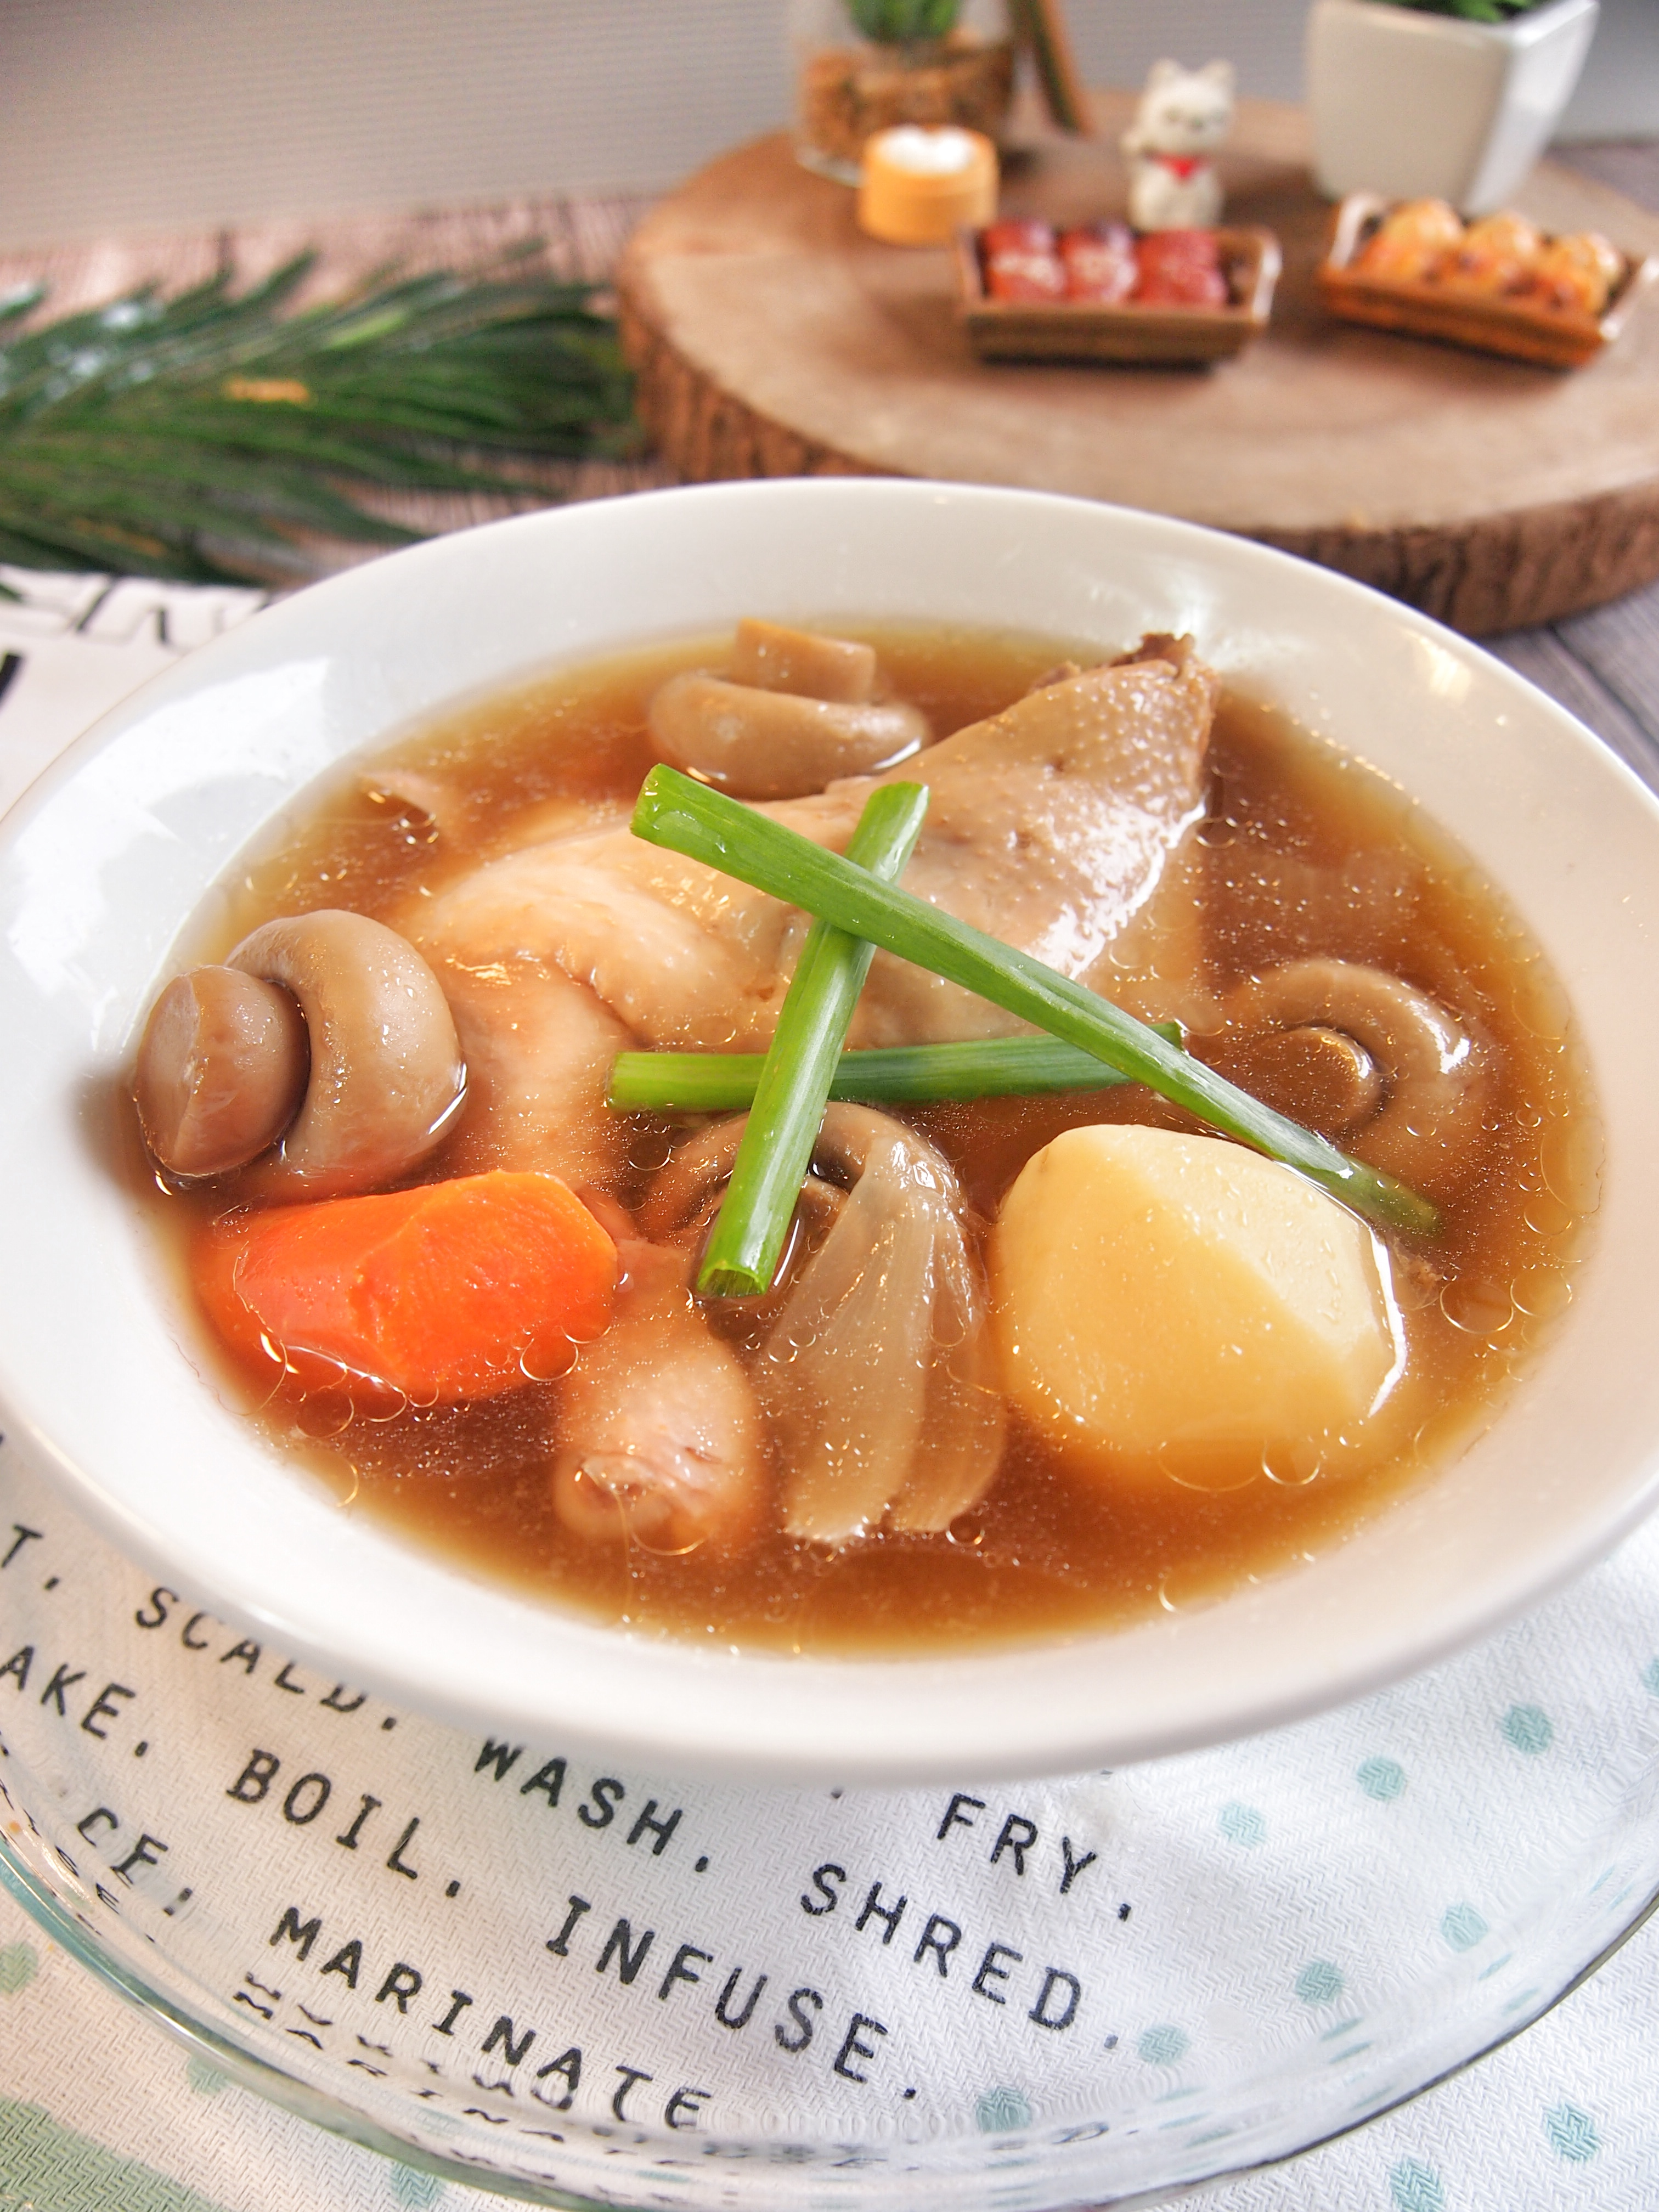 Simple Chicken Soup w/ Oyster Sauce 蚝油鸡汤